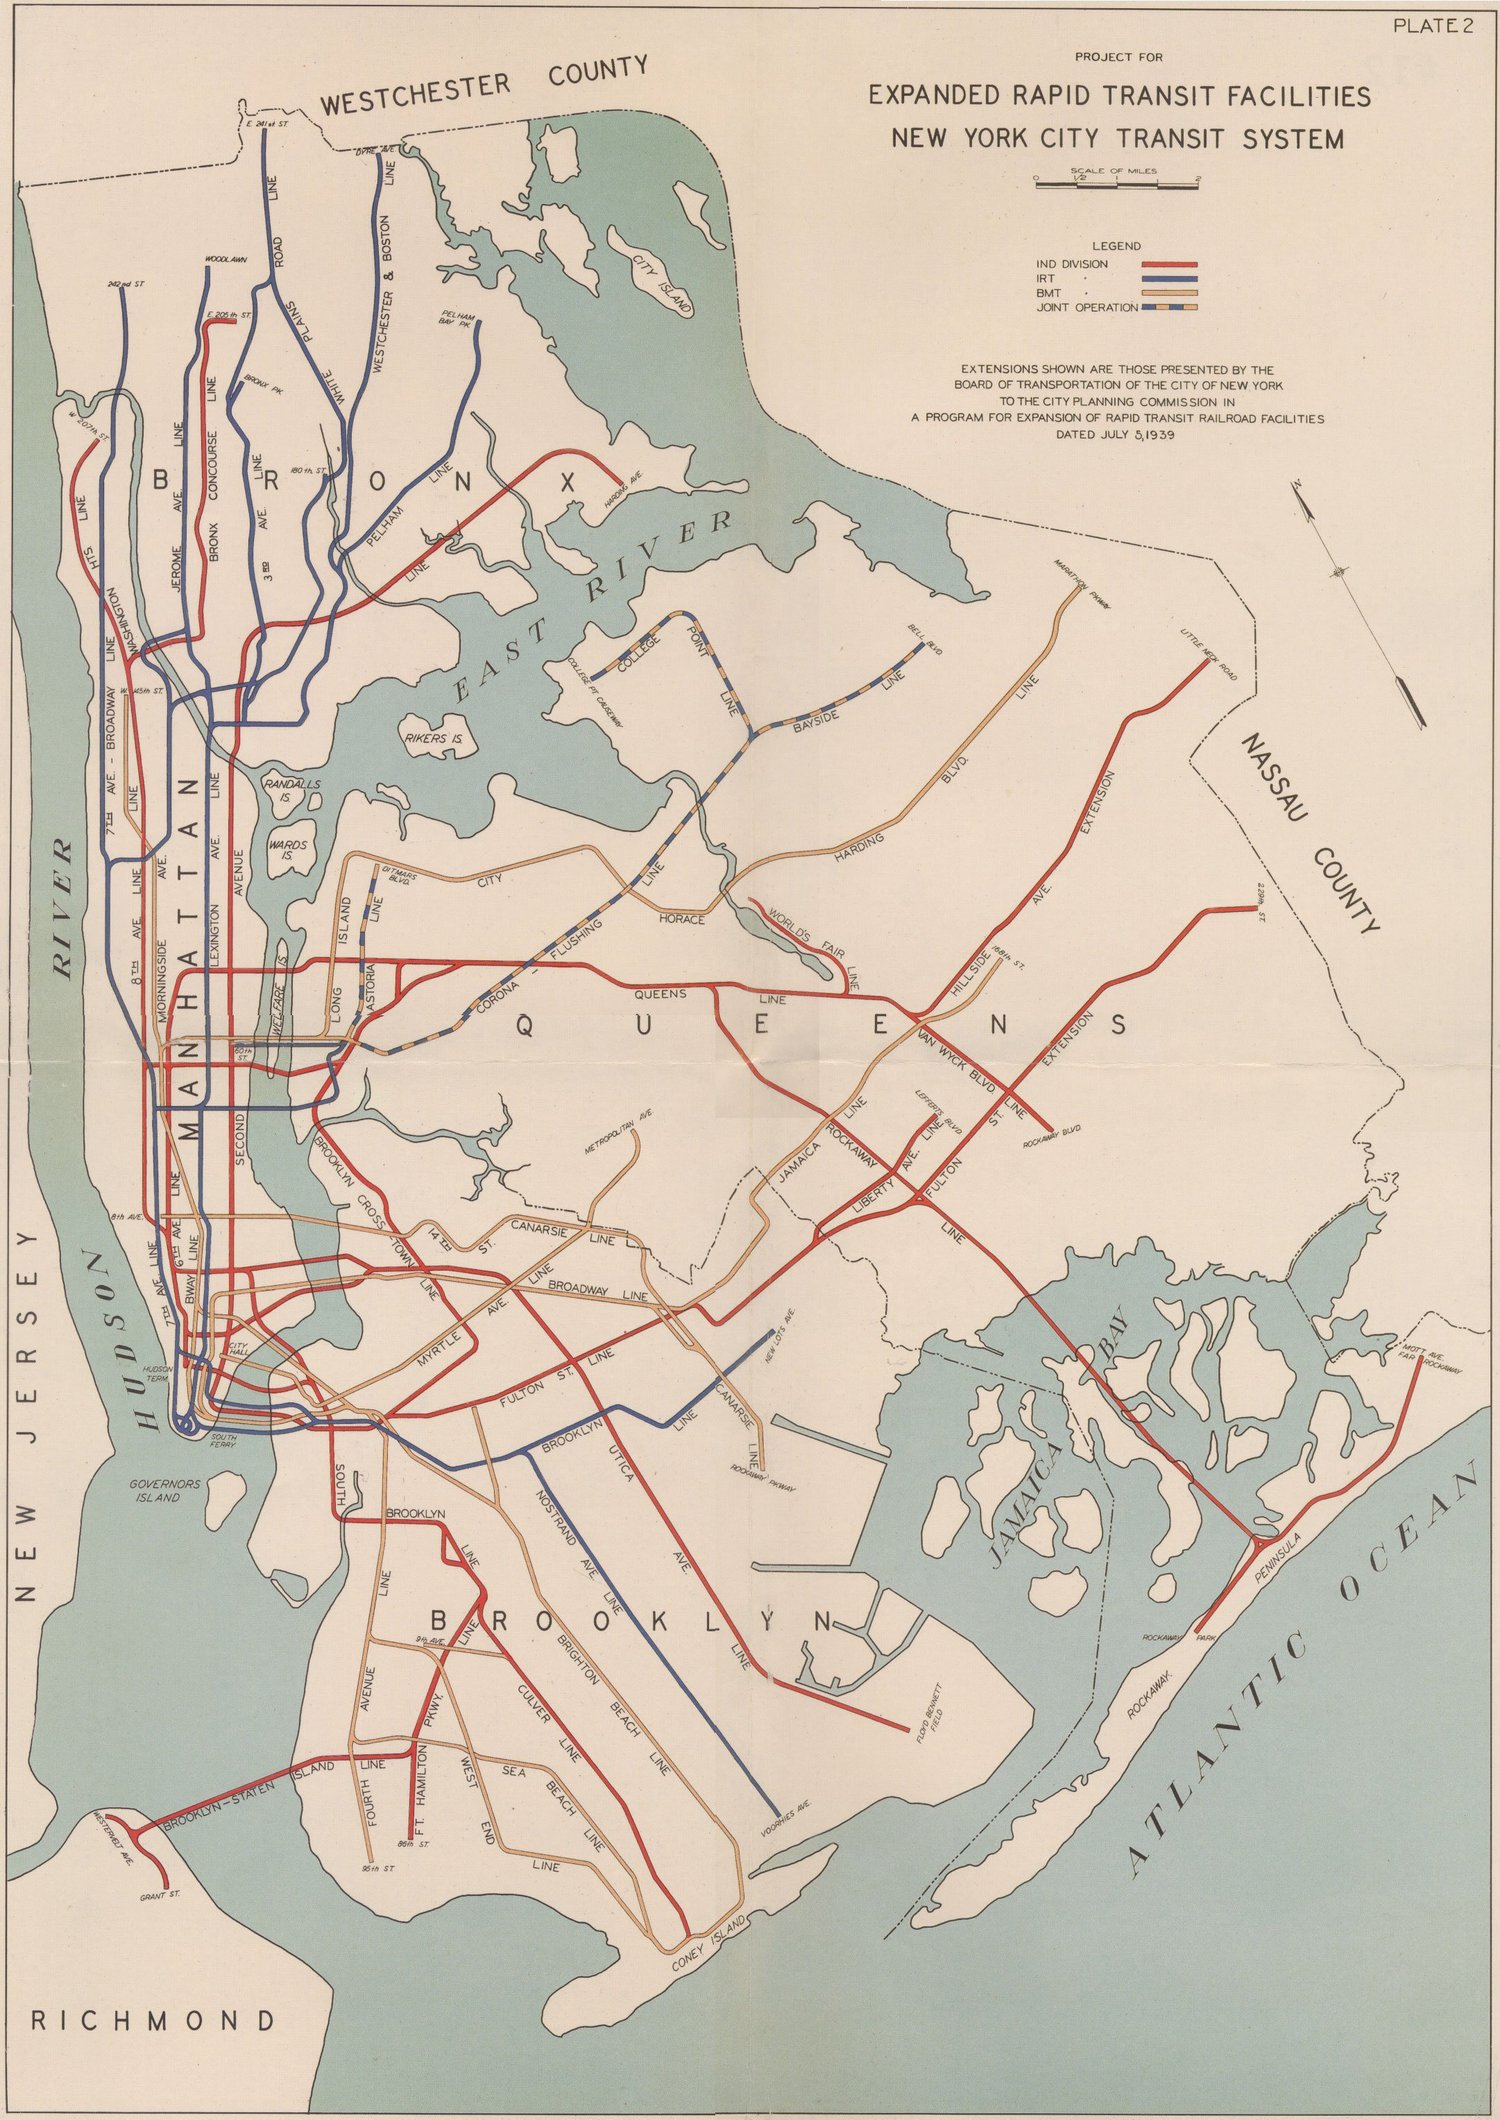 Astoria Subway Map.Vintage Transit Plan Subway Map From 1939 Shows A Different Way To